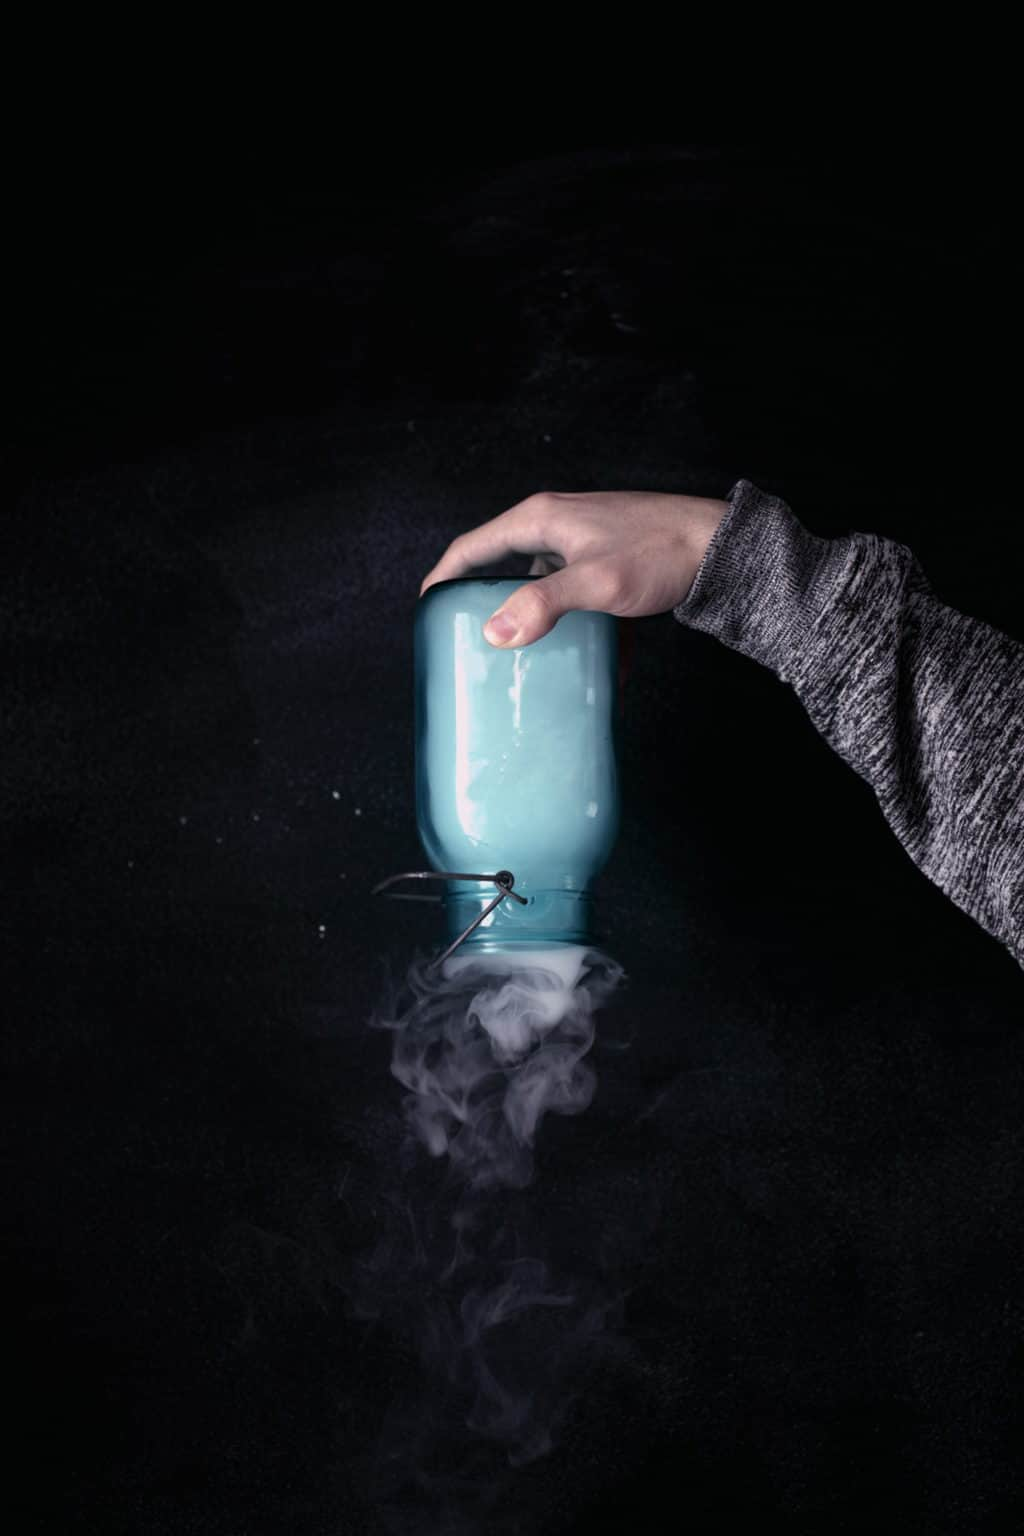 A Jar With Vape Smoke Holded Upside Down